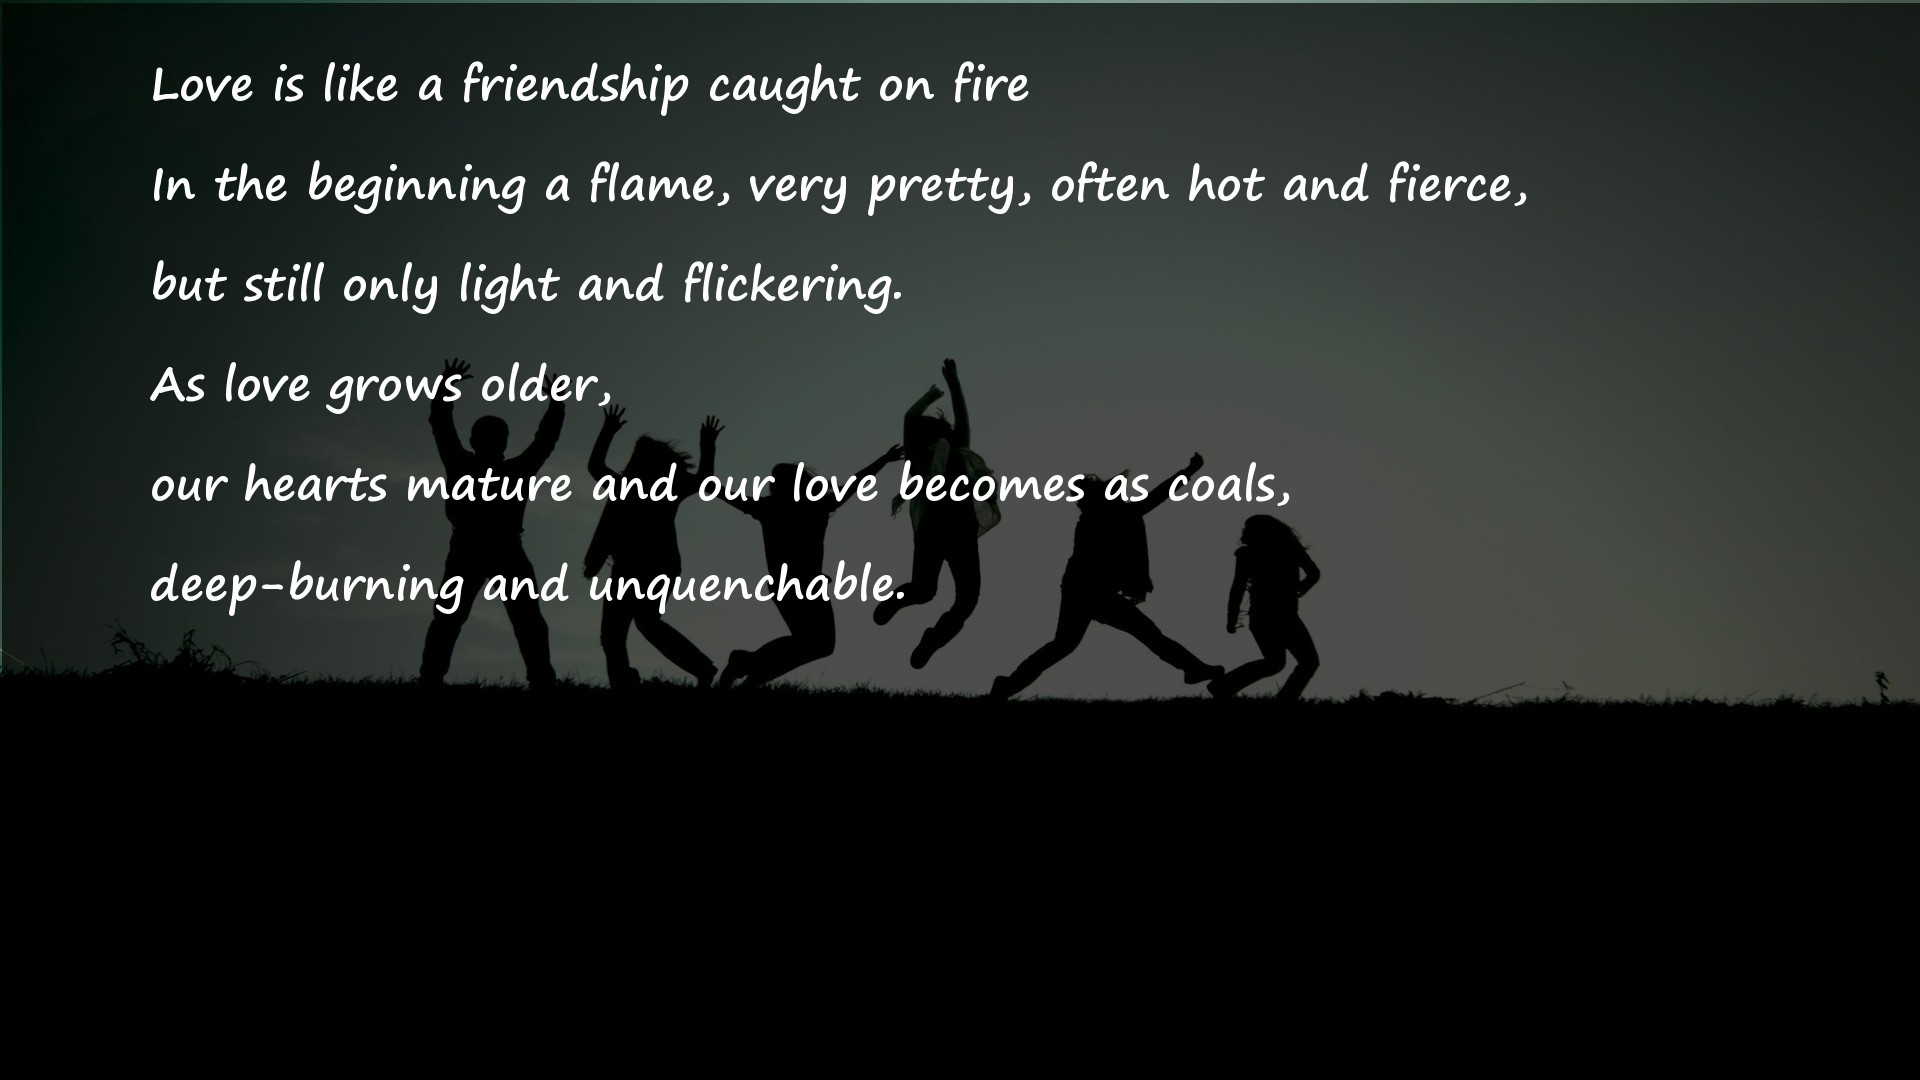 Love is like a friendship caught on fire